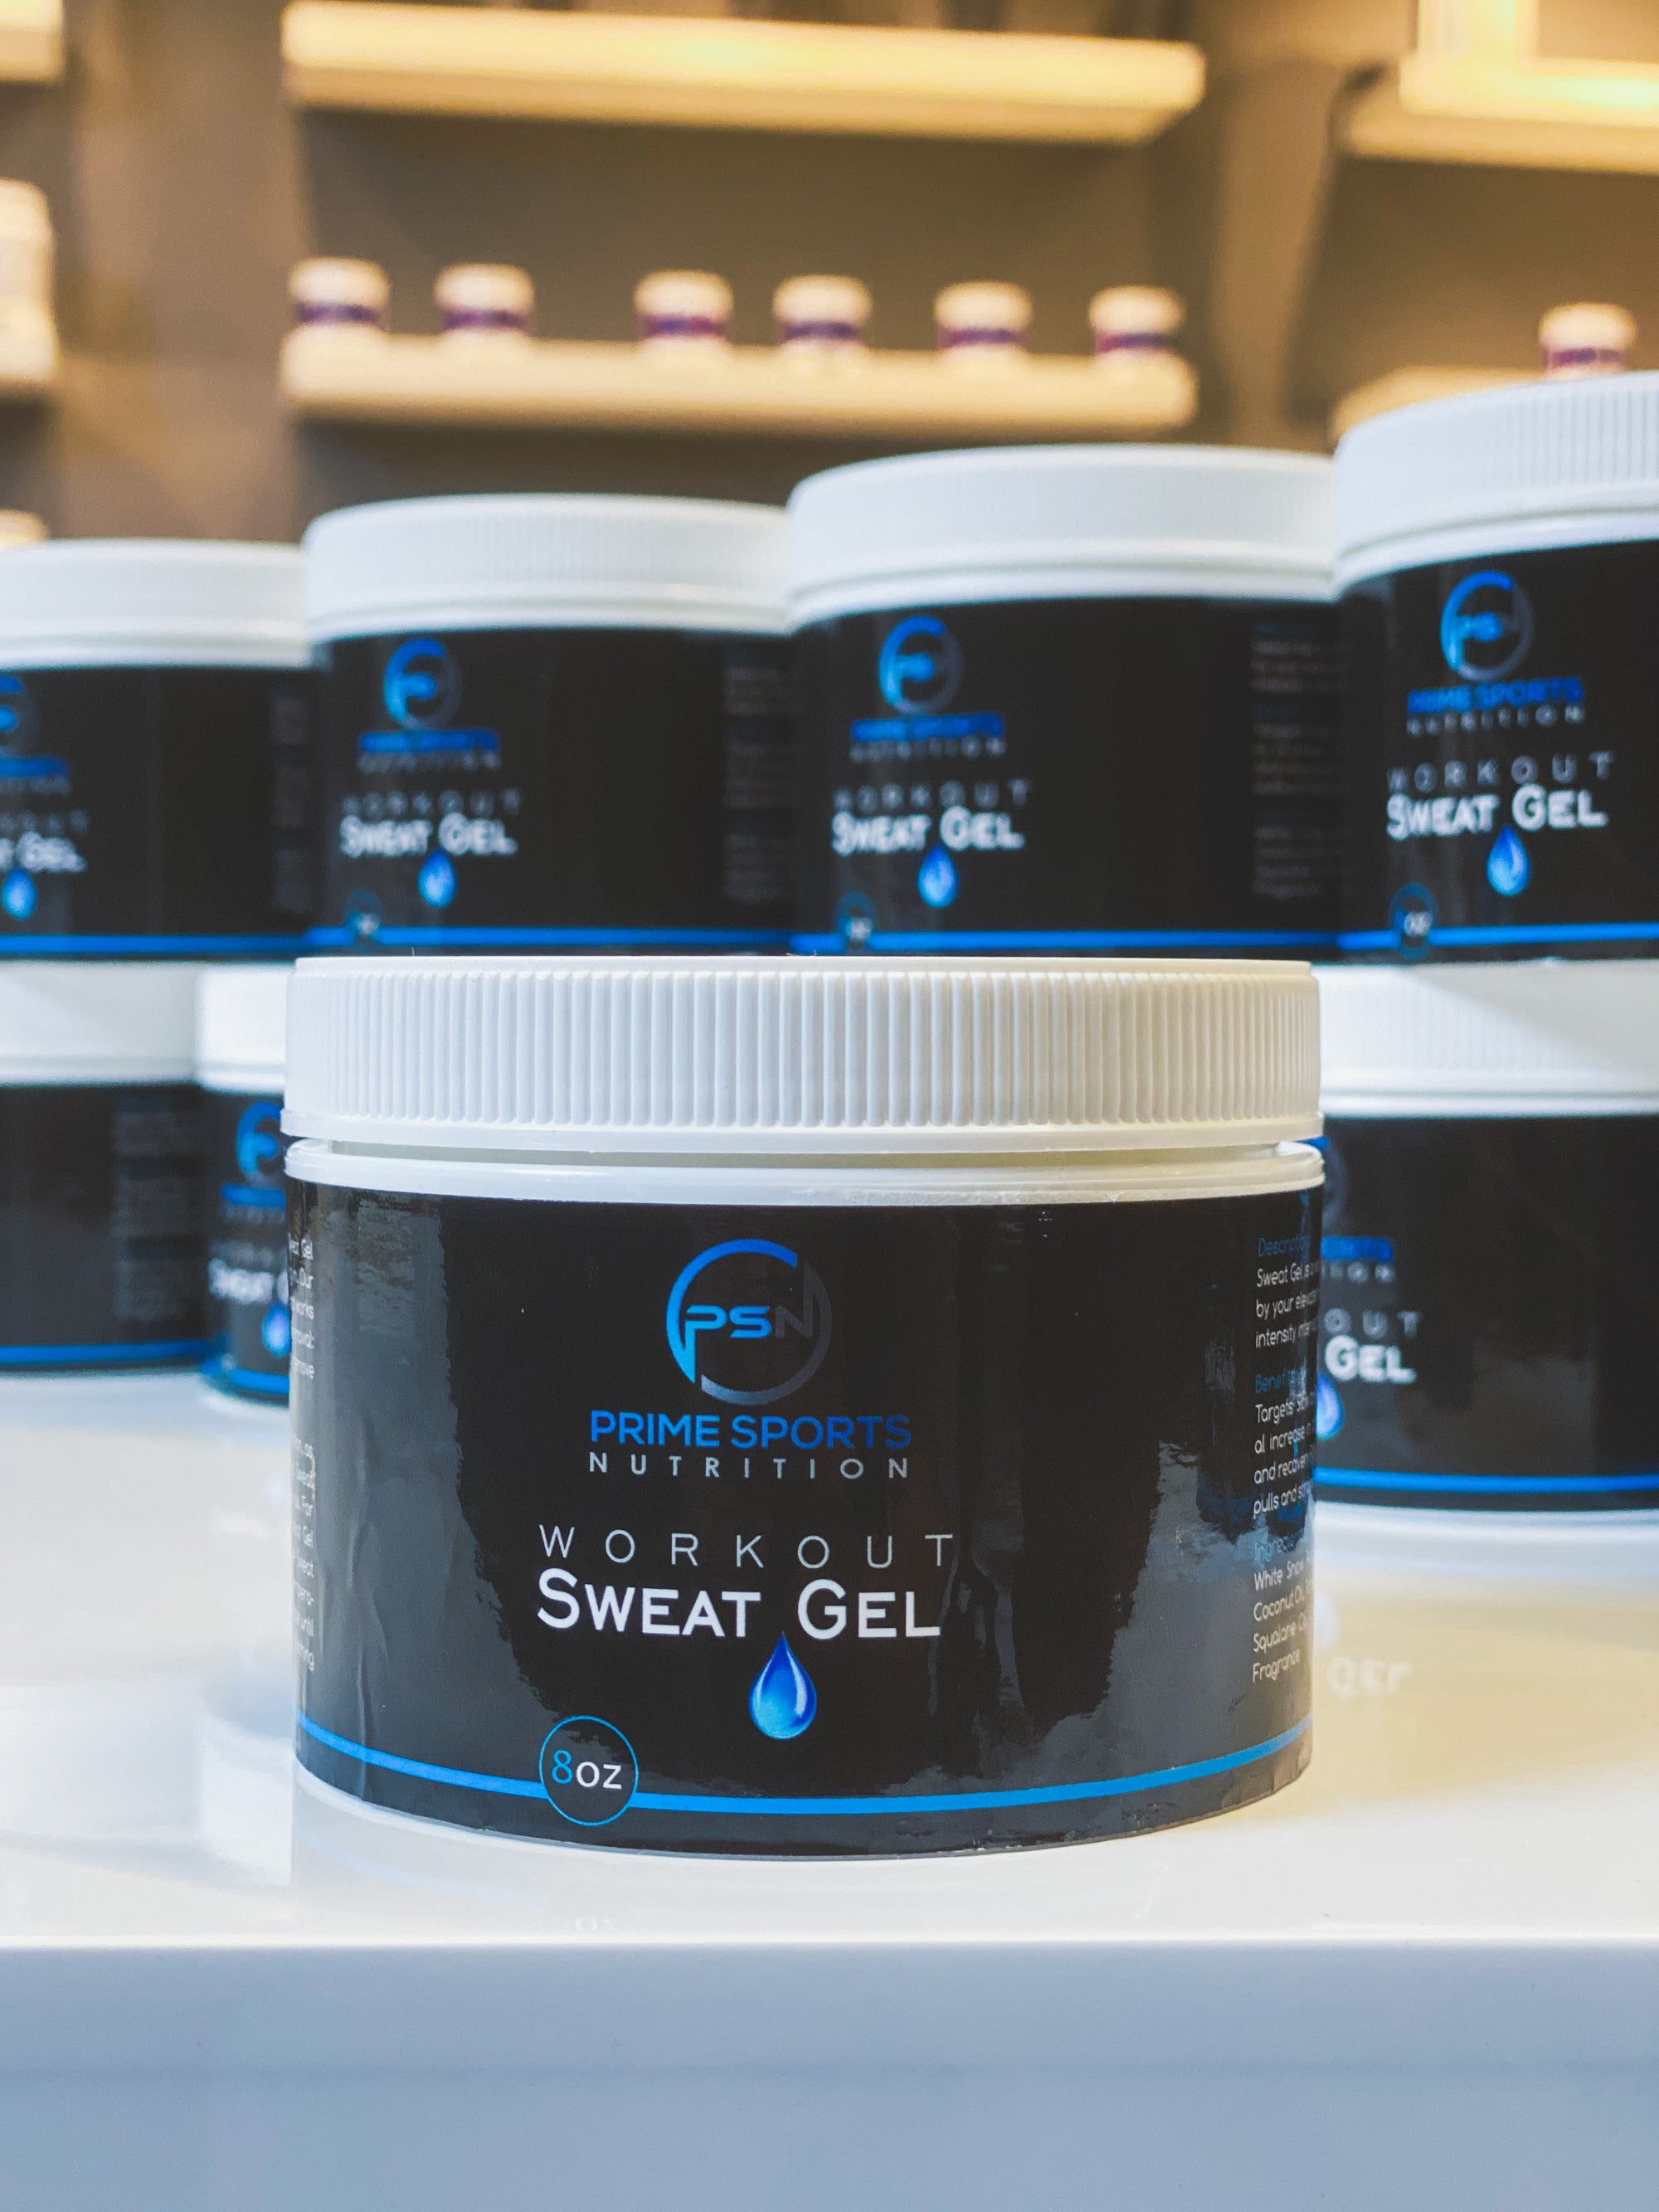 PSN Workout Sweat Gel